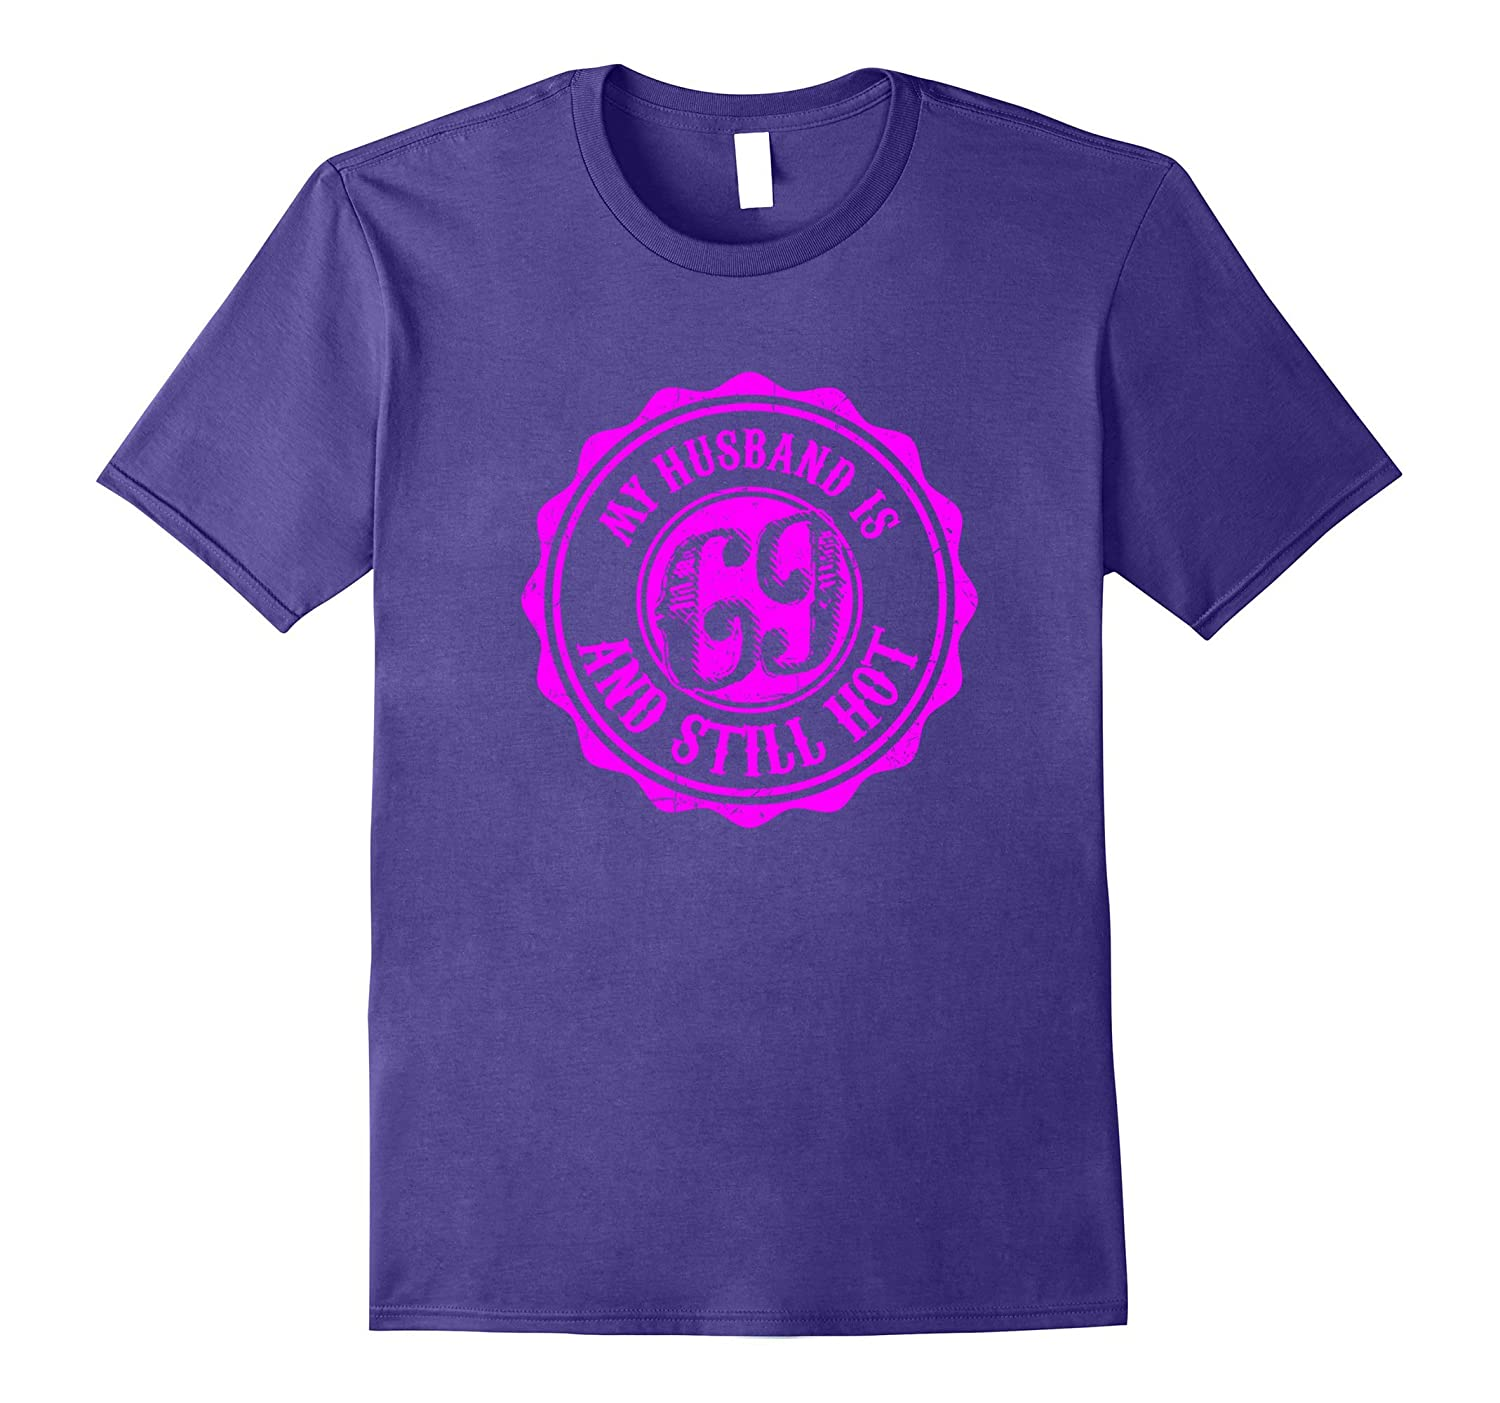 My Husband Is 69 T-Shirts Meaning Gifts for Wife Best Gift-Vaci